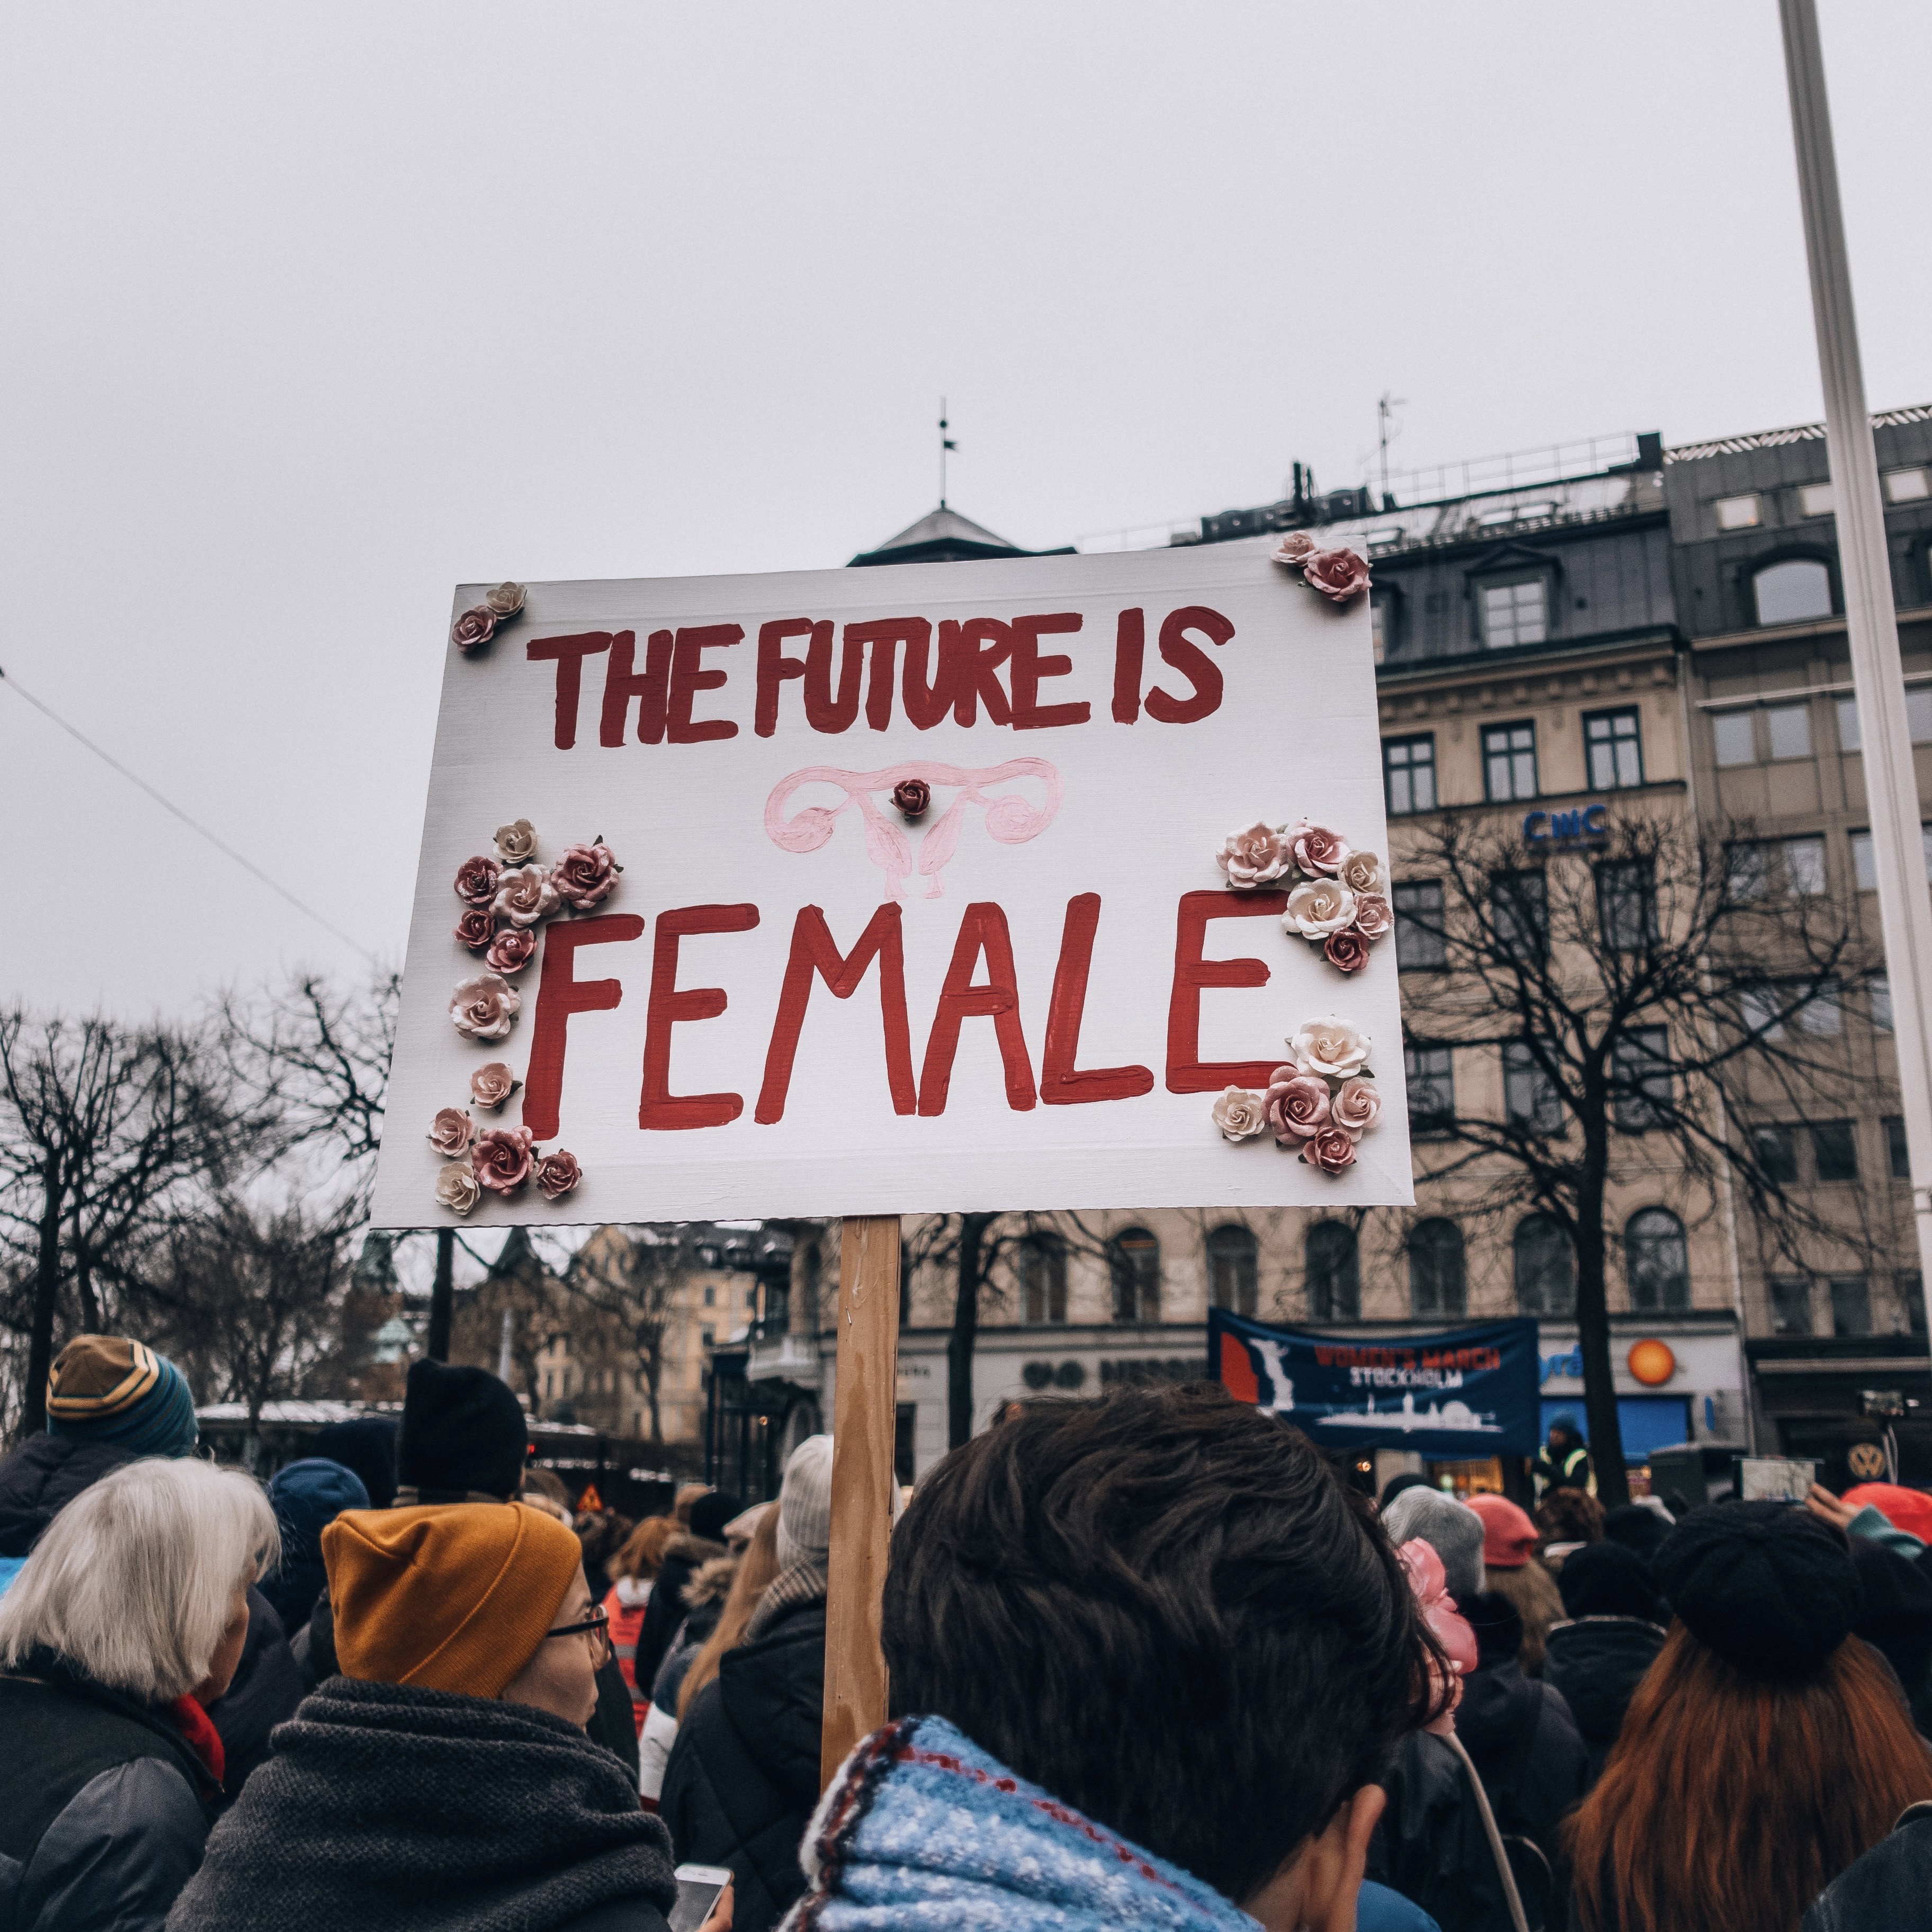 Are women better leaders?